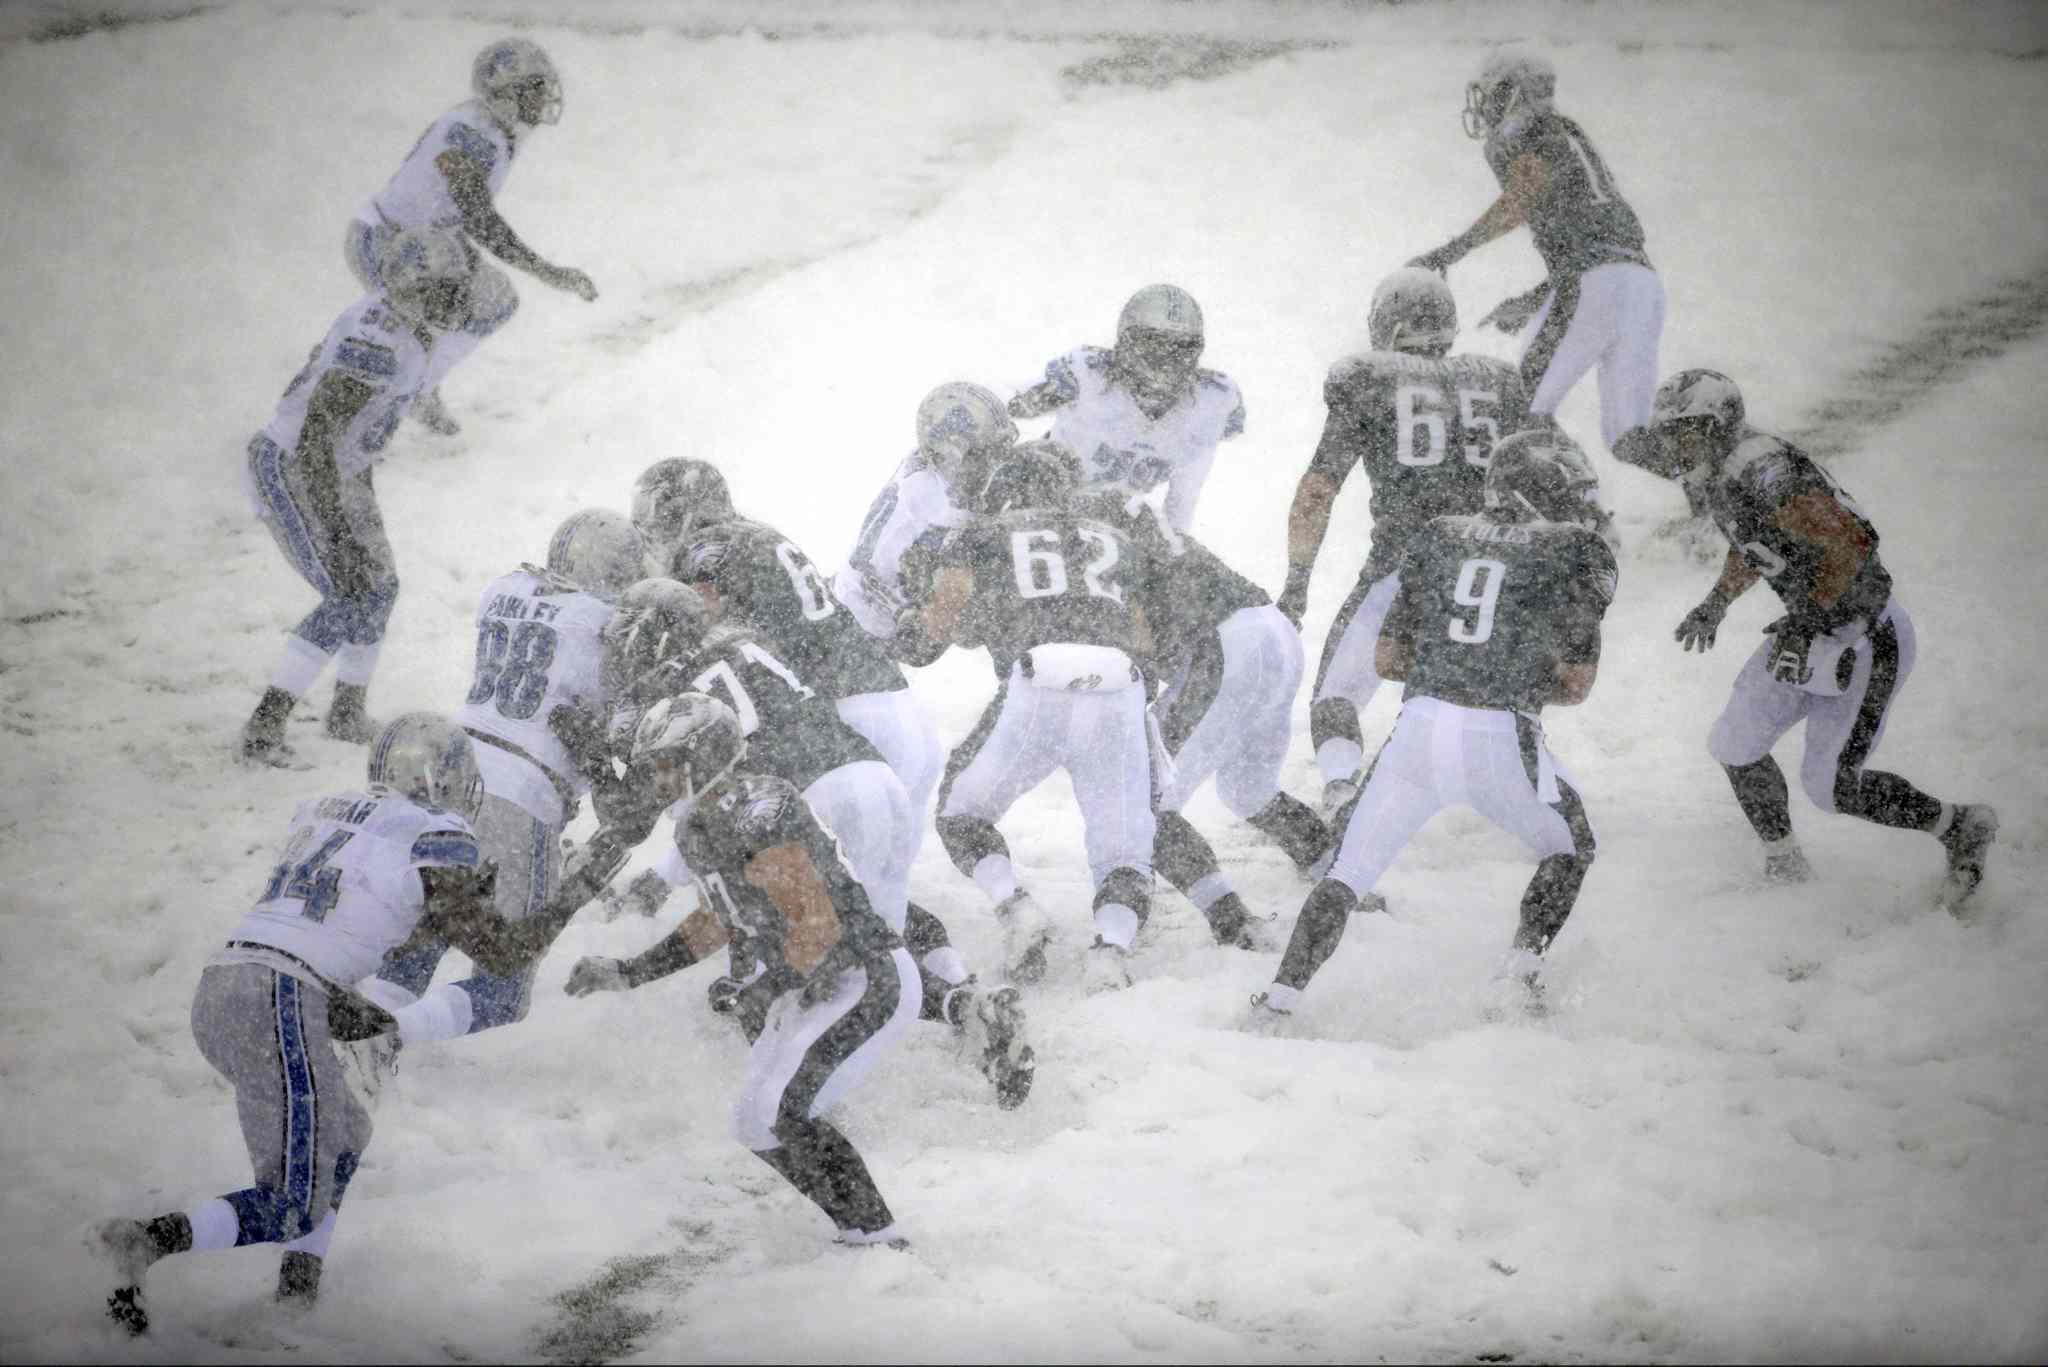 The Philadelphia Eagles and Detroit Lions battle it out in the snow in Philadelphia on Sunday.